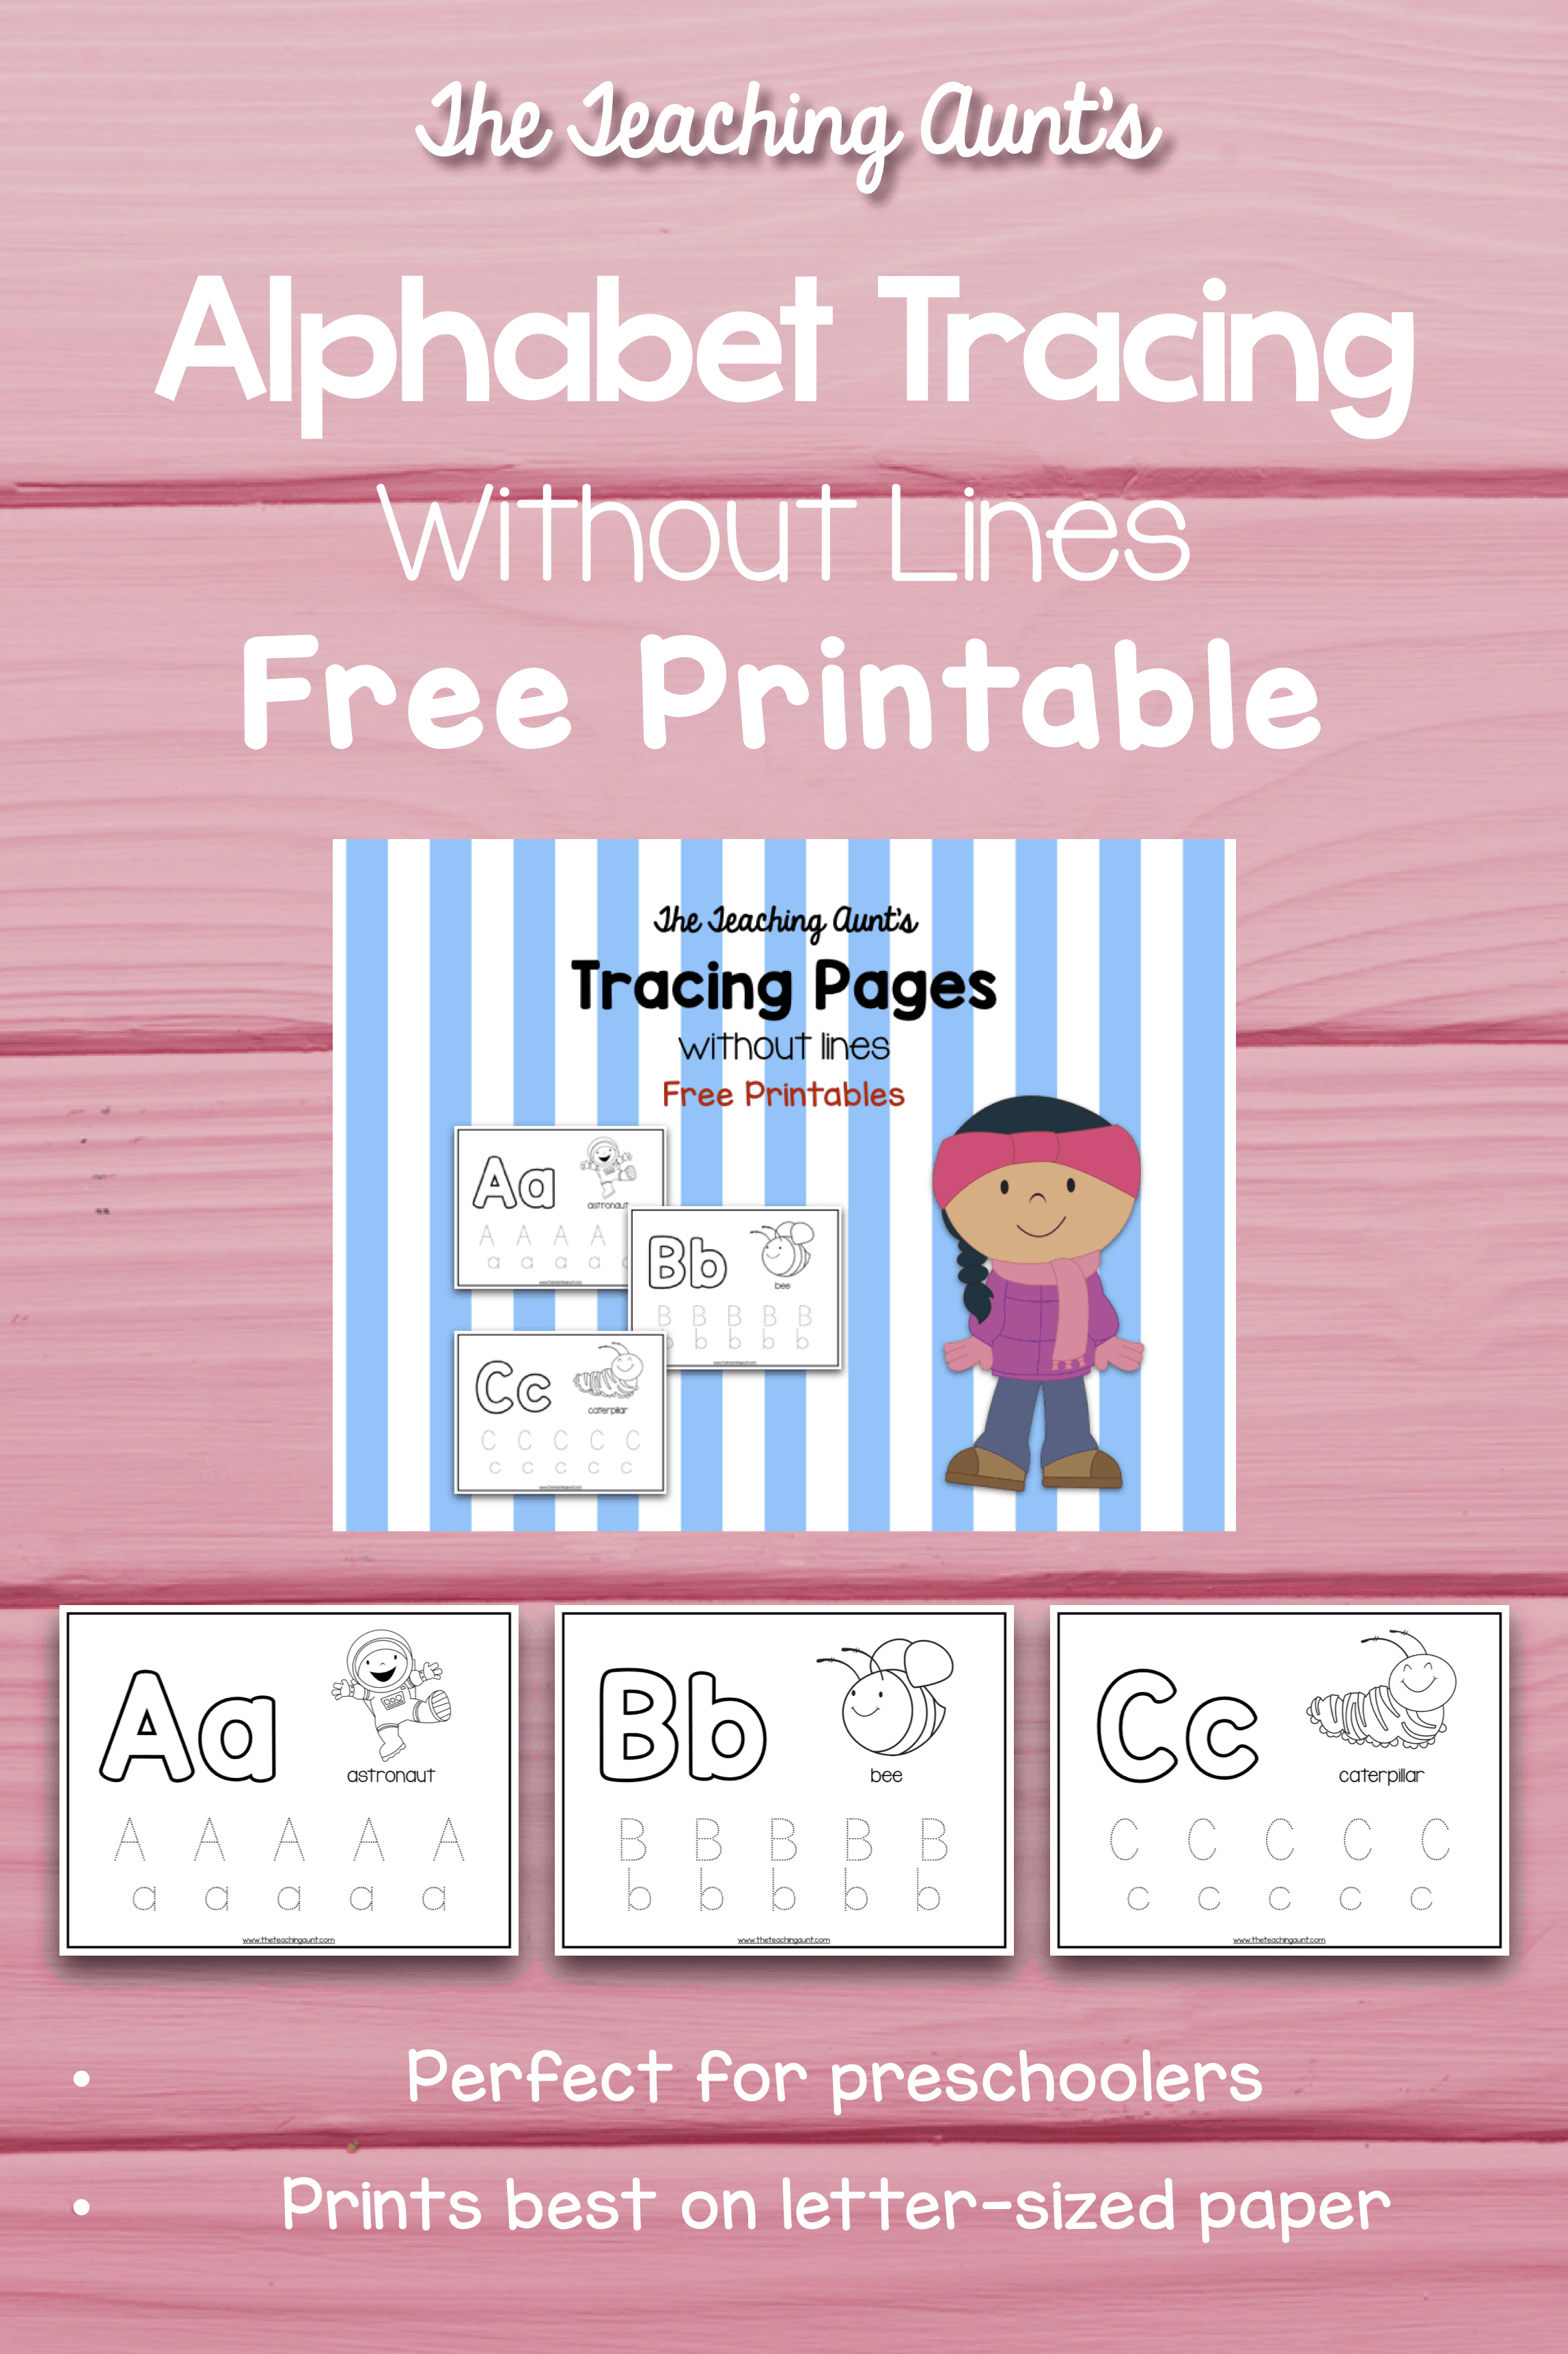 Alphabet Tracing Without Lines Free Printable - The Teaching Aunt